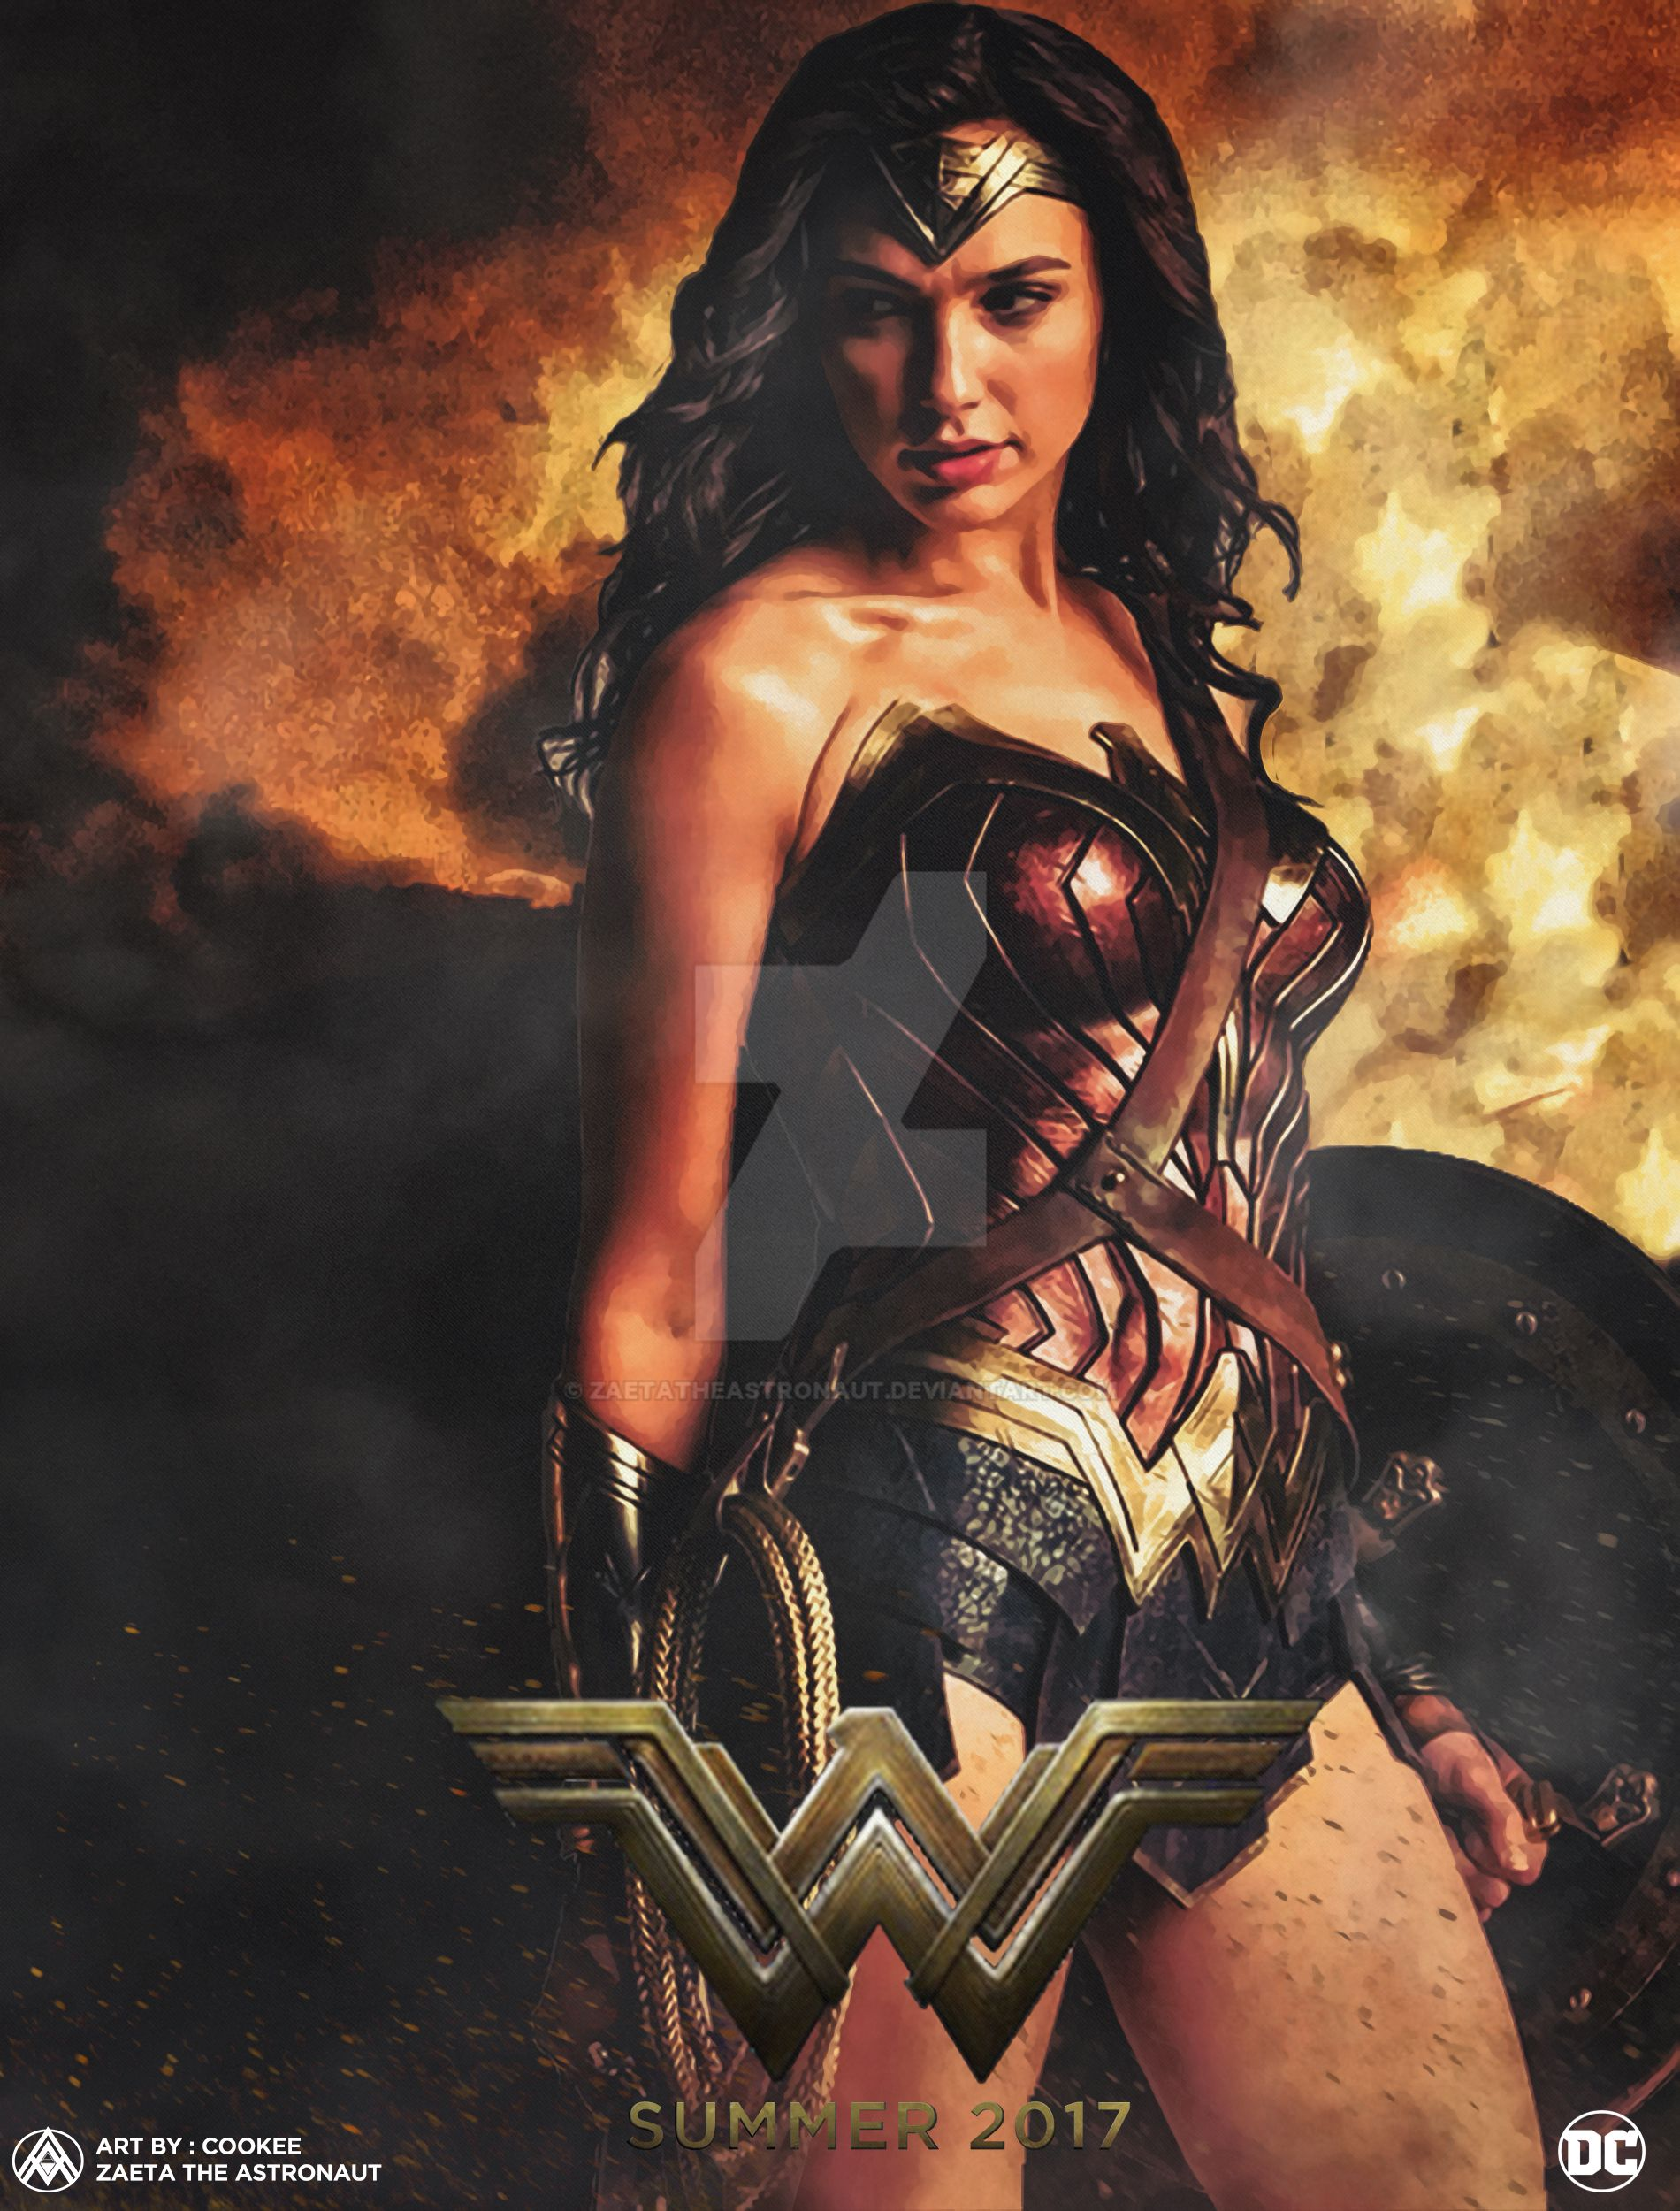 wonder_woman_movie_poster_by_zaetatheastronaut-da4n6o8.jpg